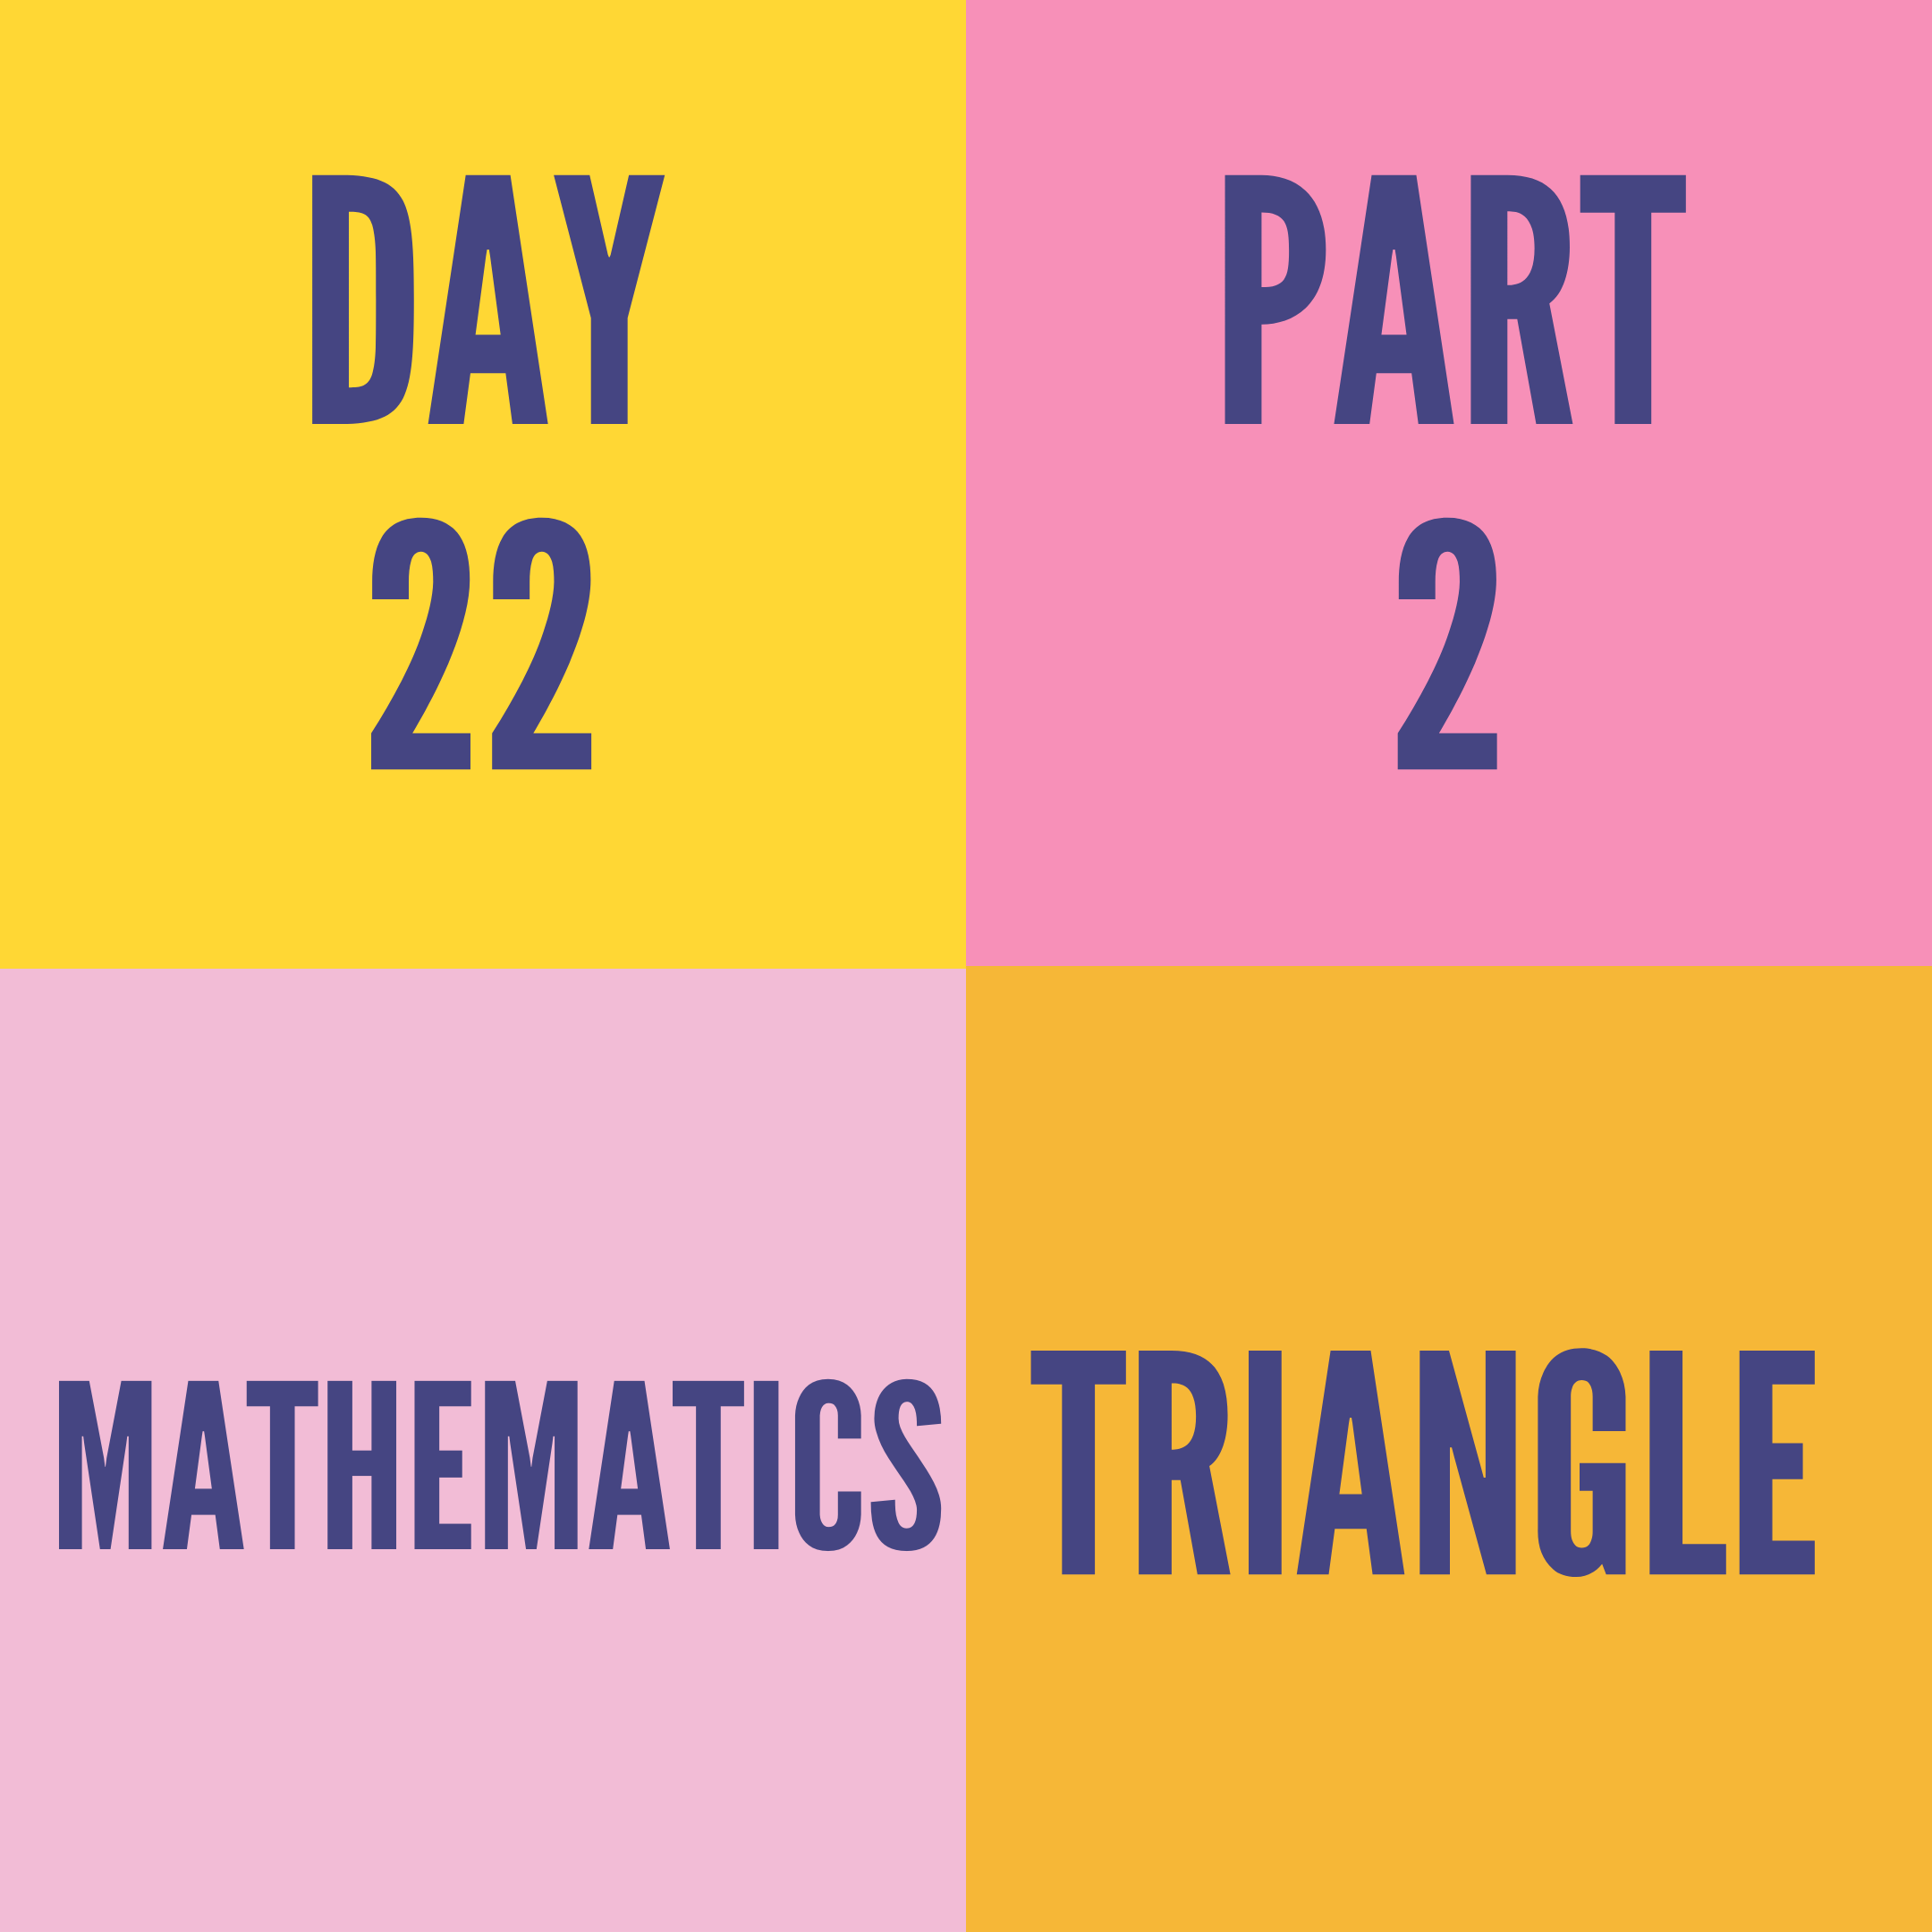 DAY-22 PART-2 TRIANGLE